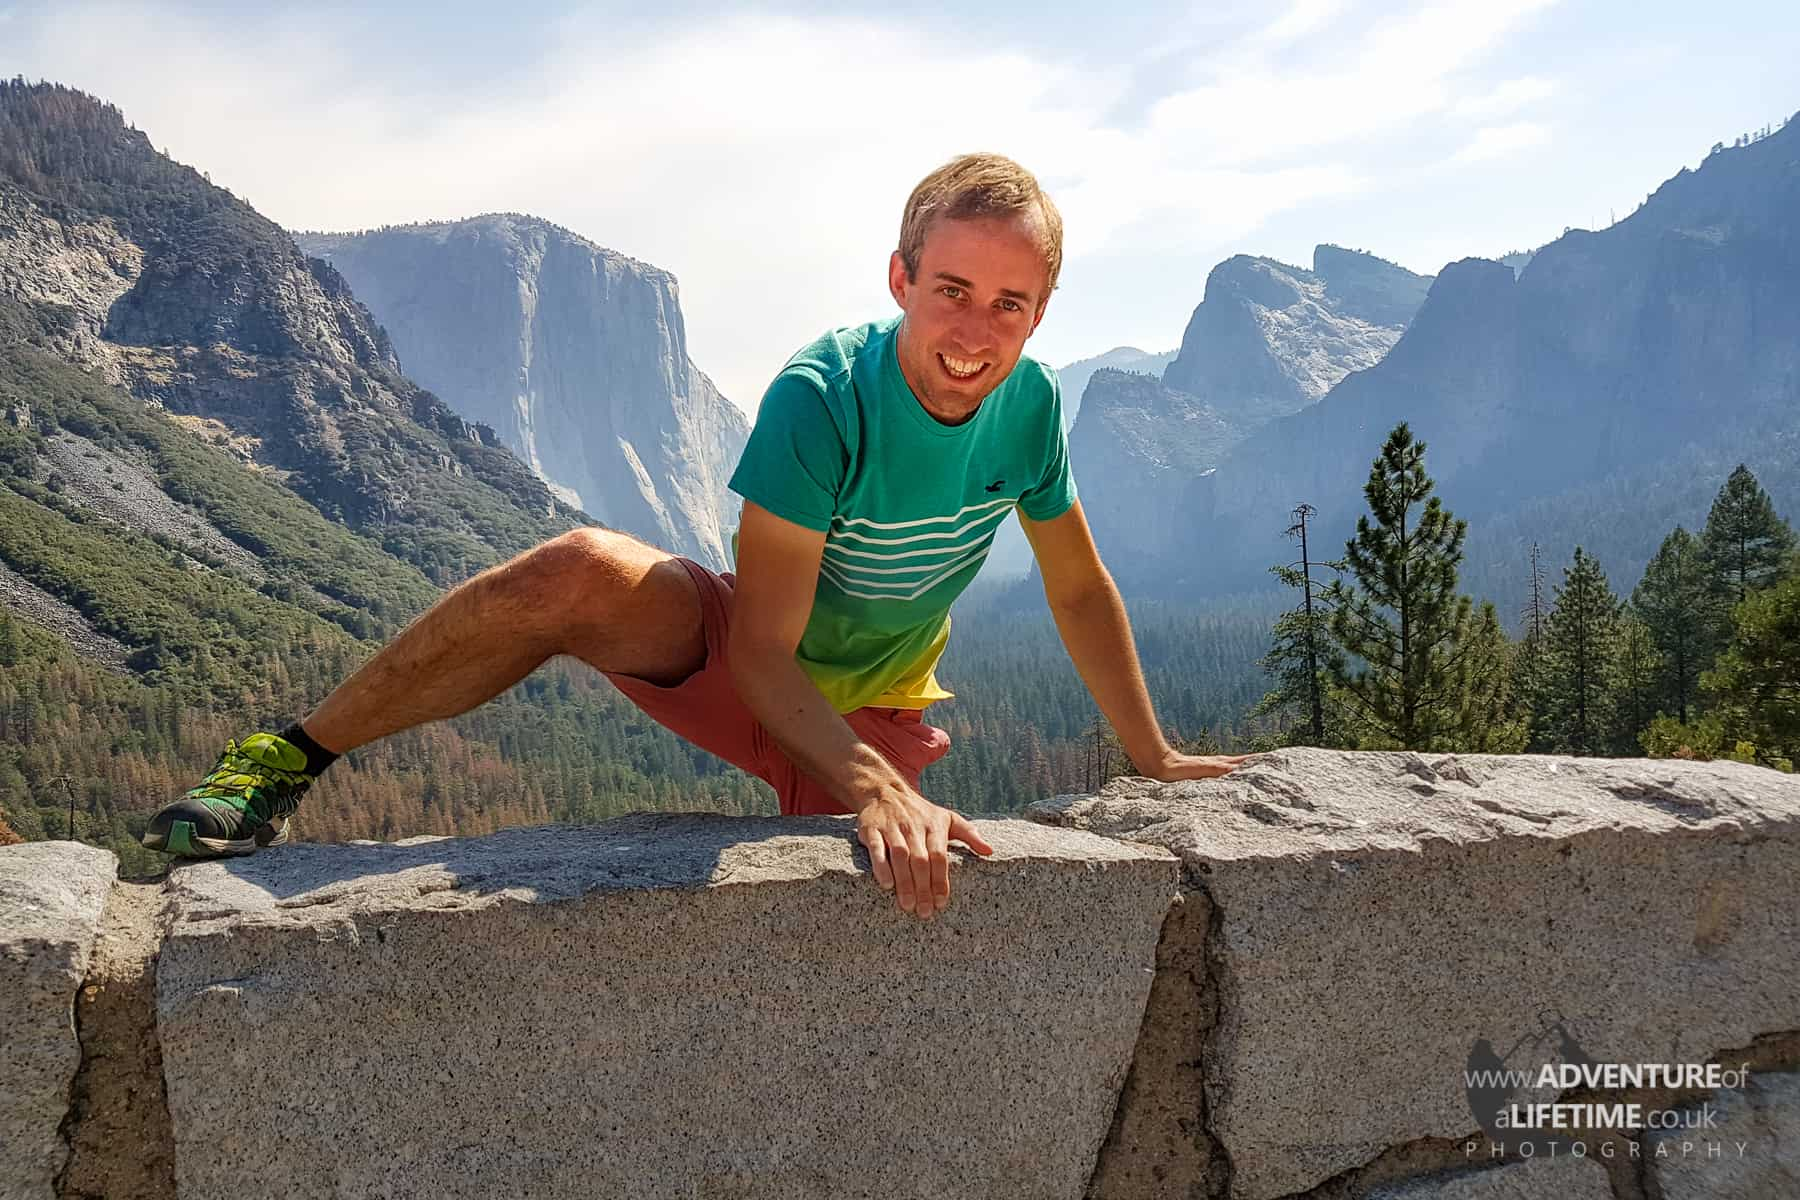 Michael climbing at Yosemite